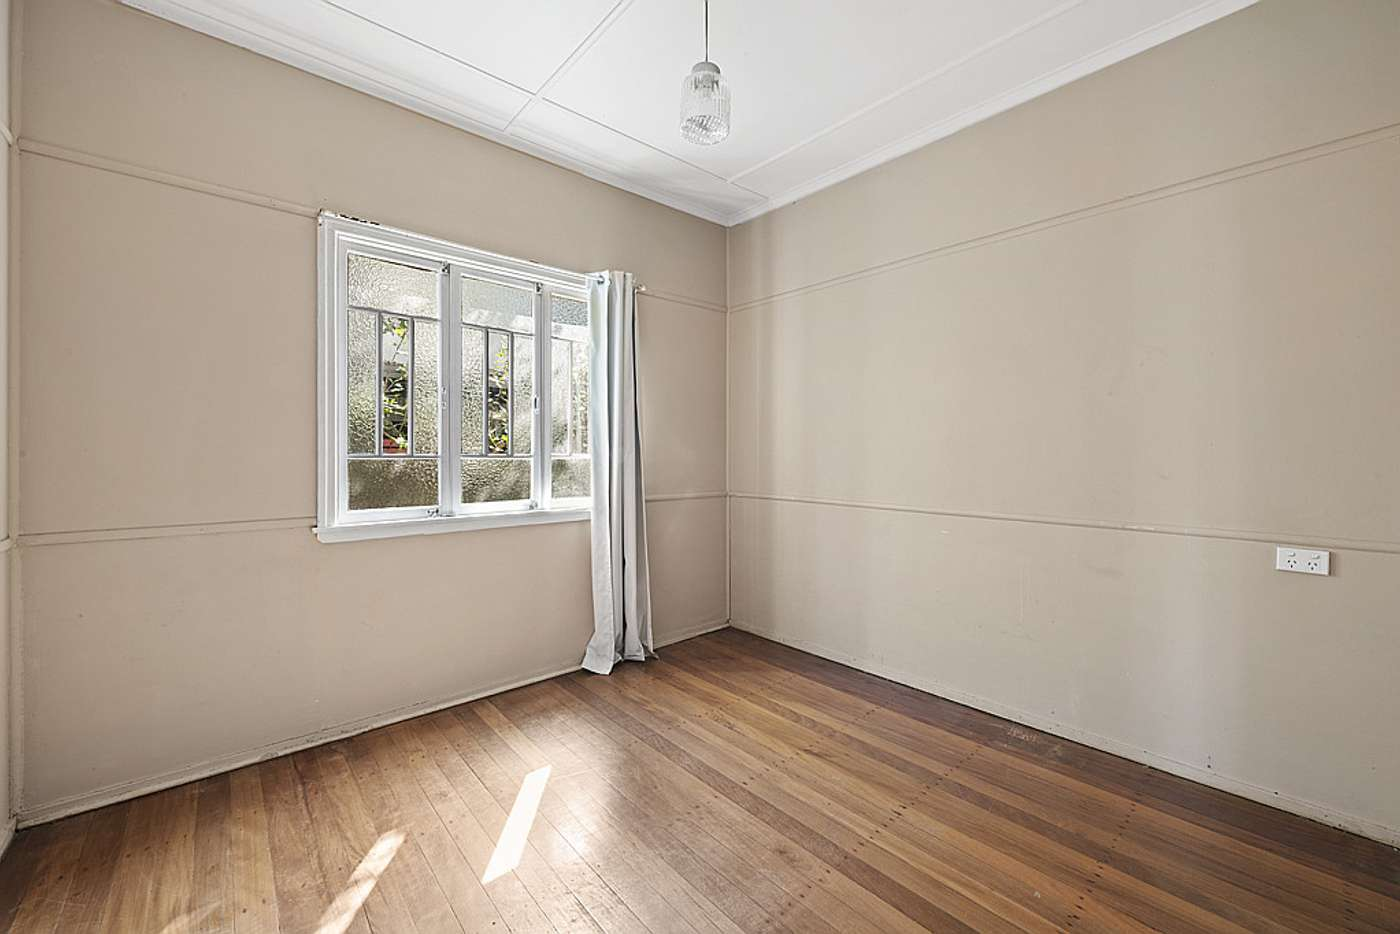 Seventh view of Homely house listing, 1 Mackay Street, Dicky Beach QLD 4551